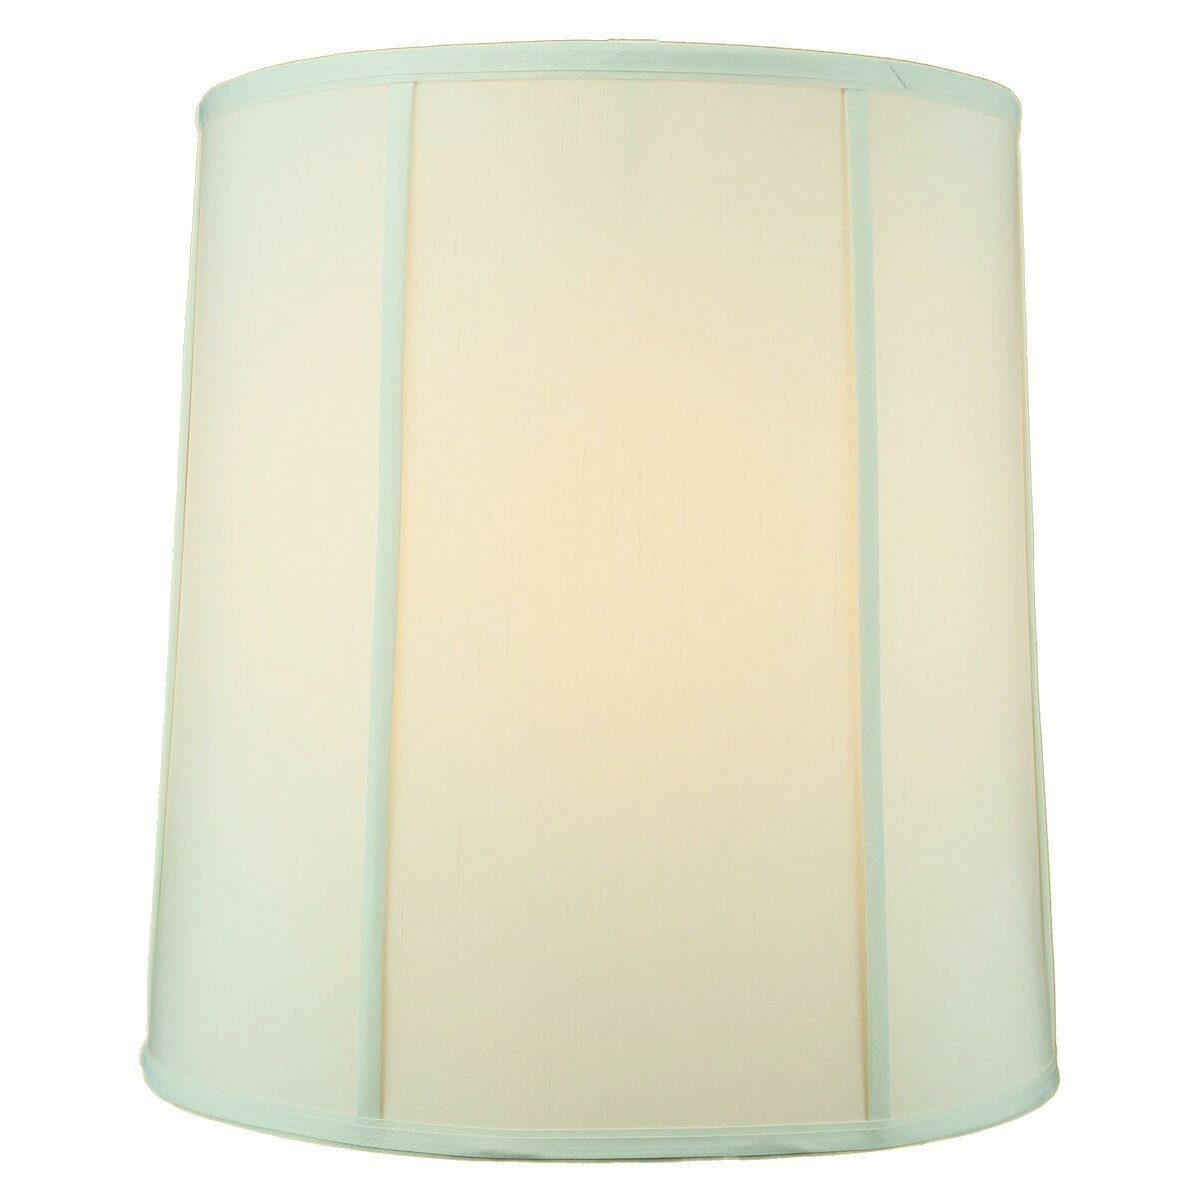 Fabric Lamp Shades Related Keywords & Suggestions - Fabric Lamp Shades ...